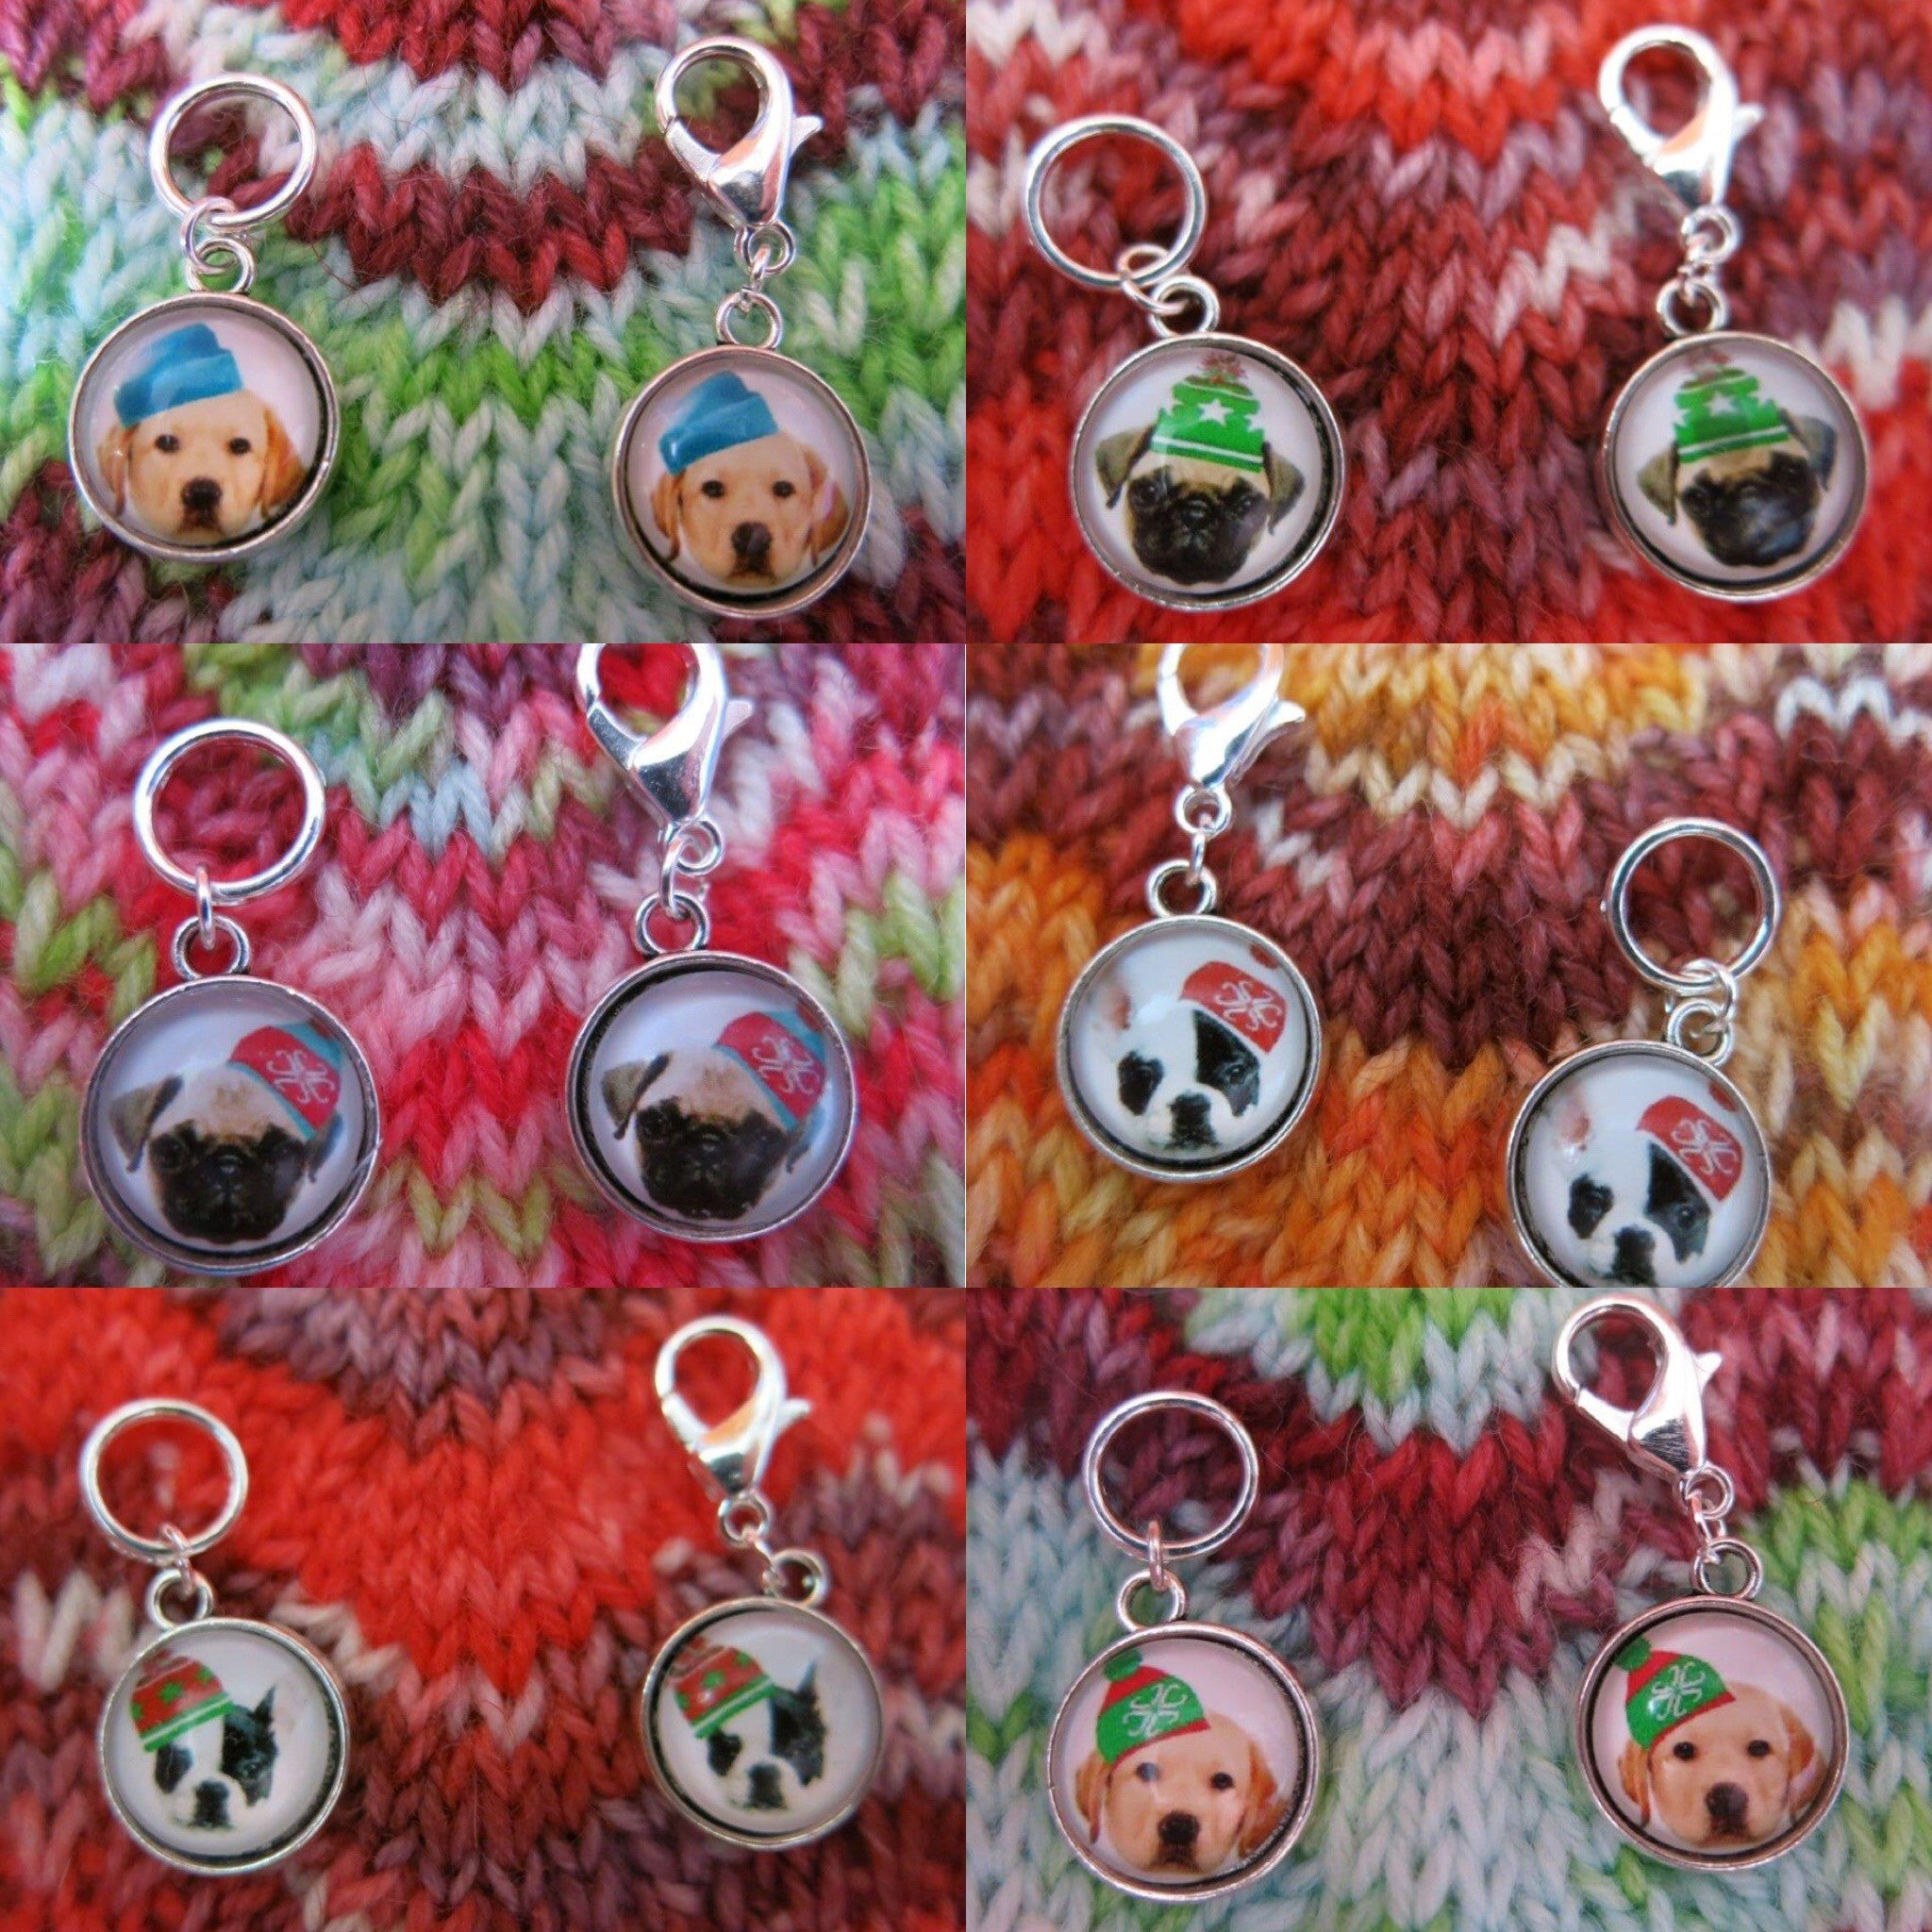 dogs in hats stitch marker place keepers for knitting and crochet